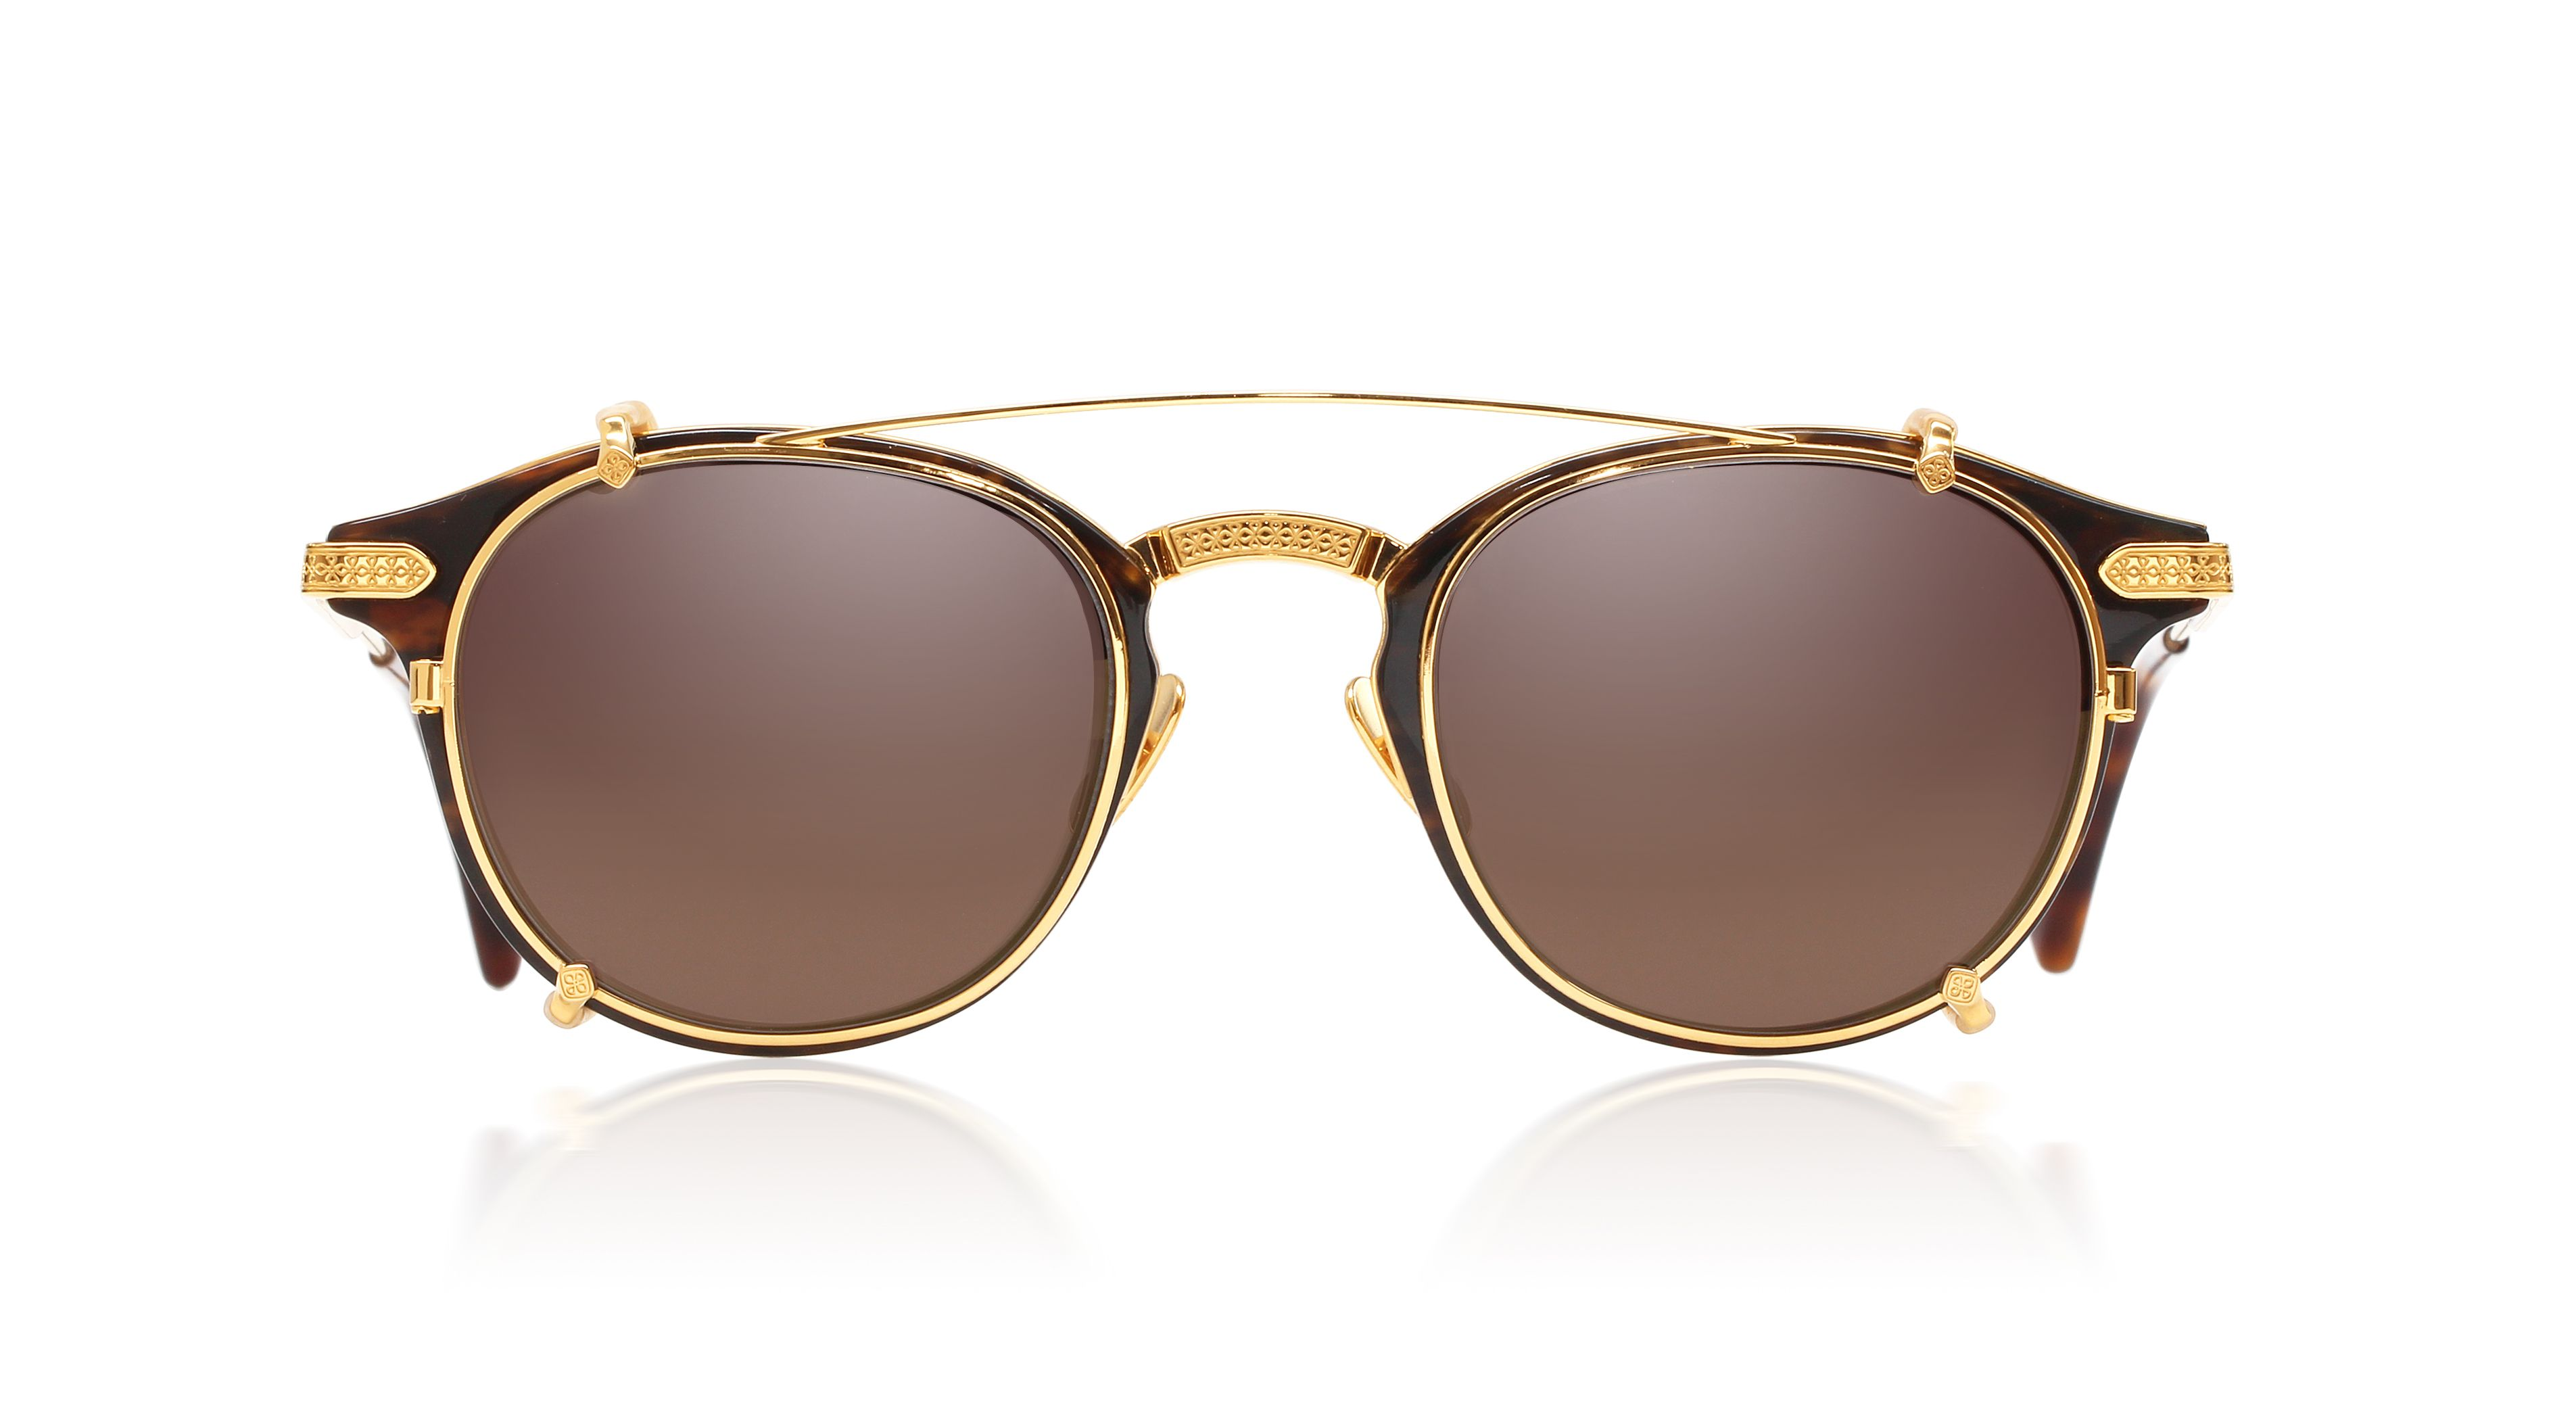 29ae2969a23 Frames For Glasses · The Delight by Maybach that comes with a super-stylish  clip-on! International